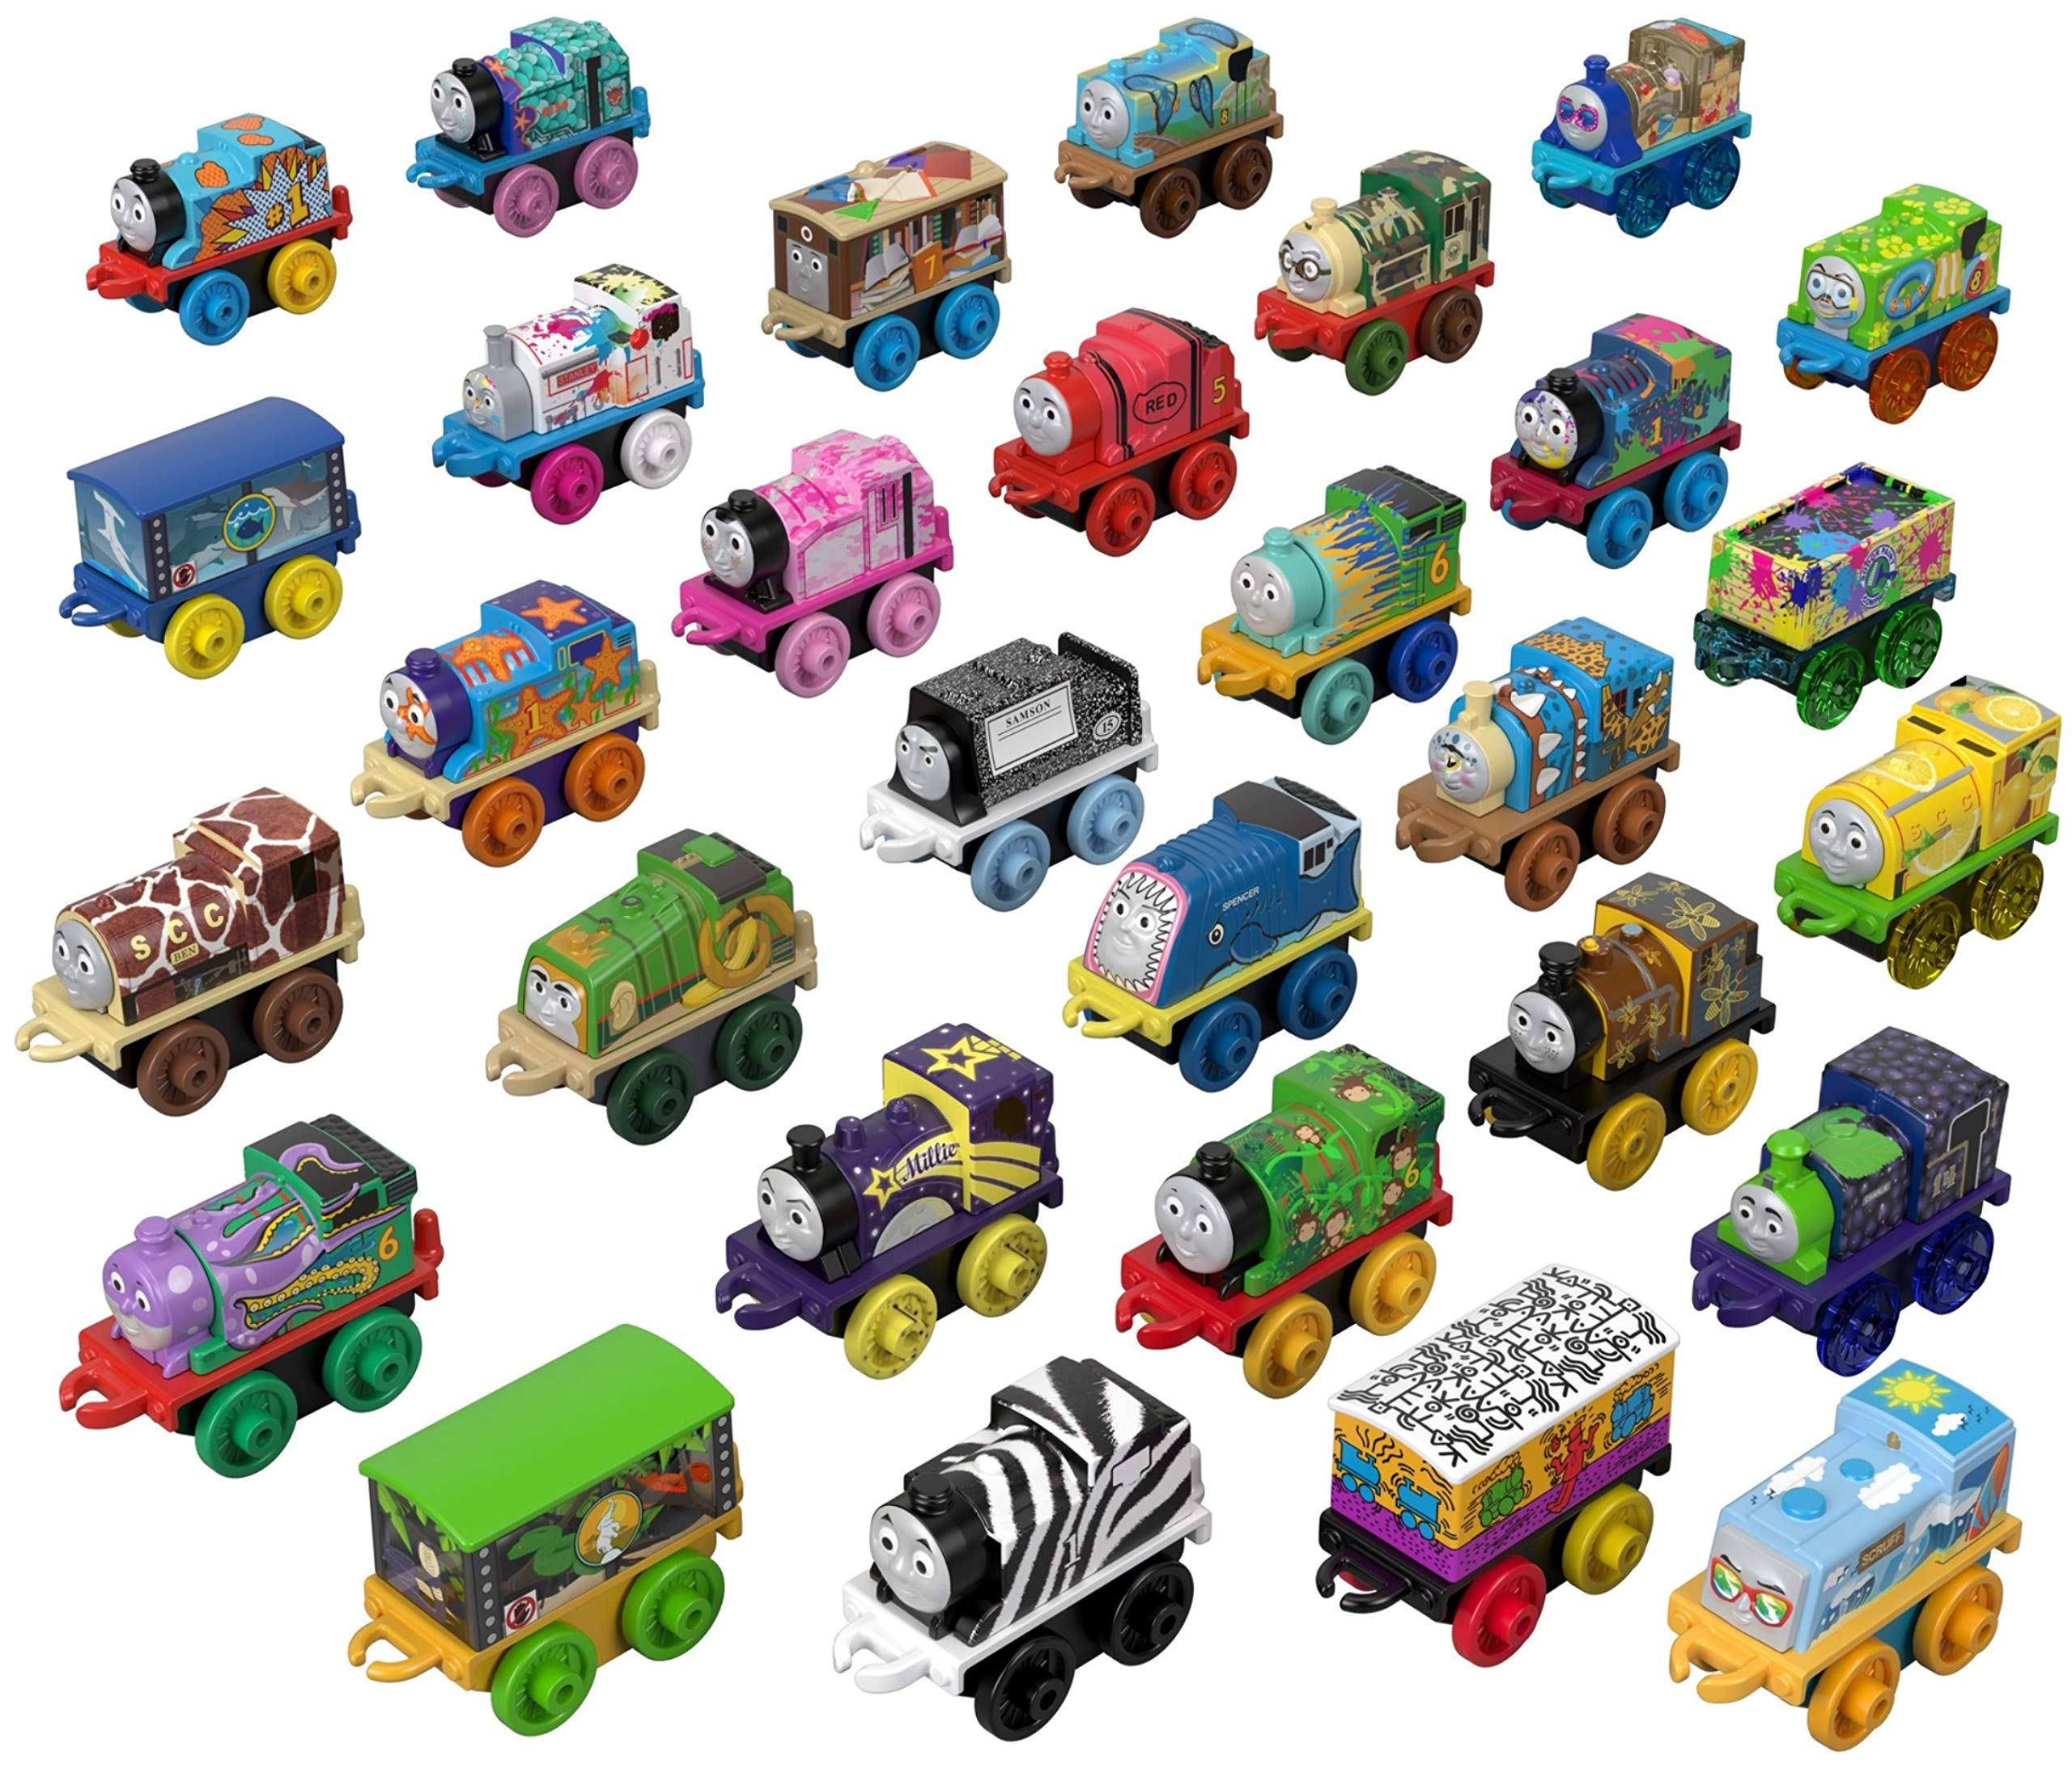 Thomas And Friends Minis 2020 Christmas Minis Amazon.com: Fisher Price Thomas & Friends MINIS, 30 Pack: Toys & Games